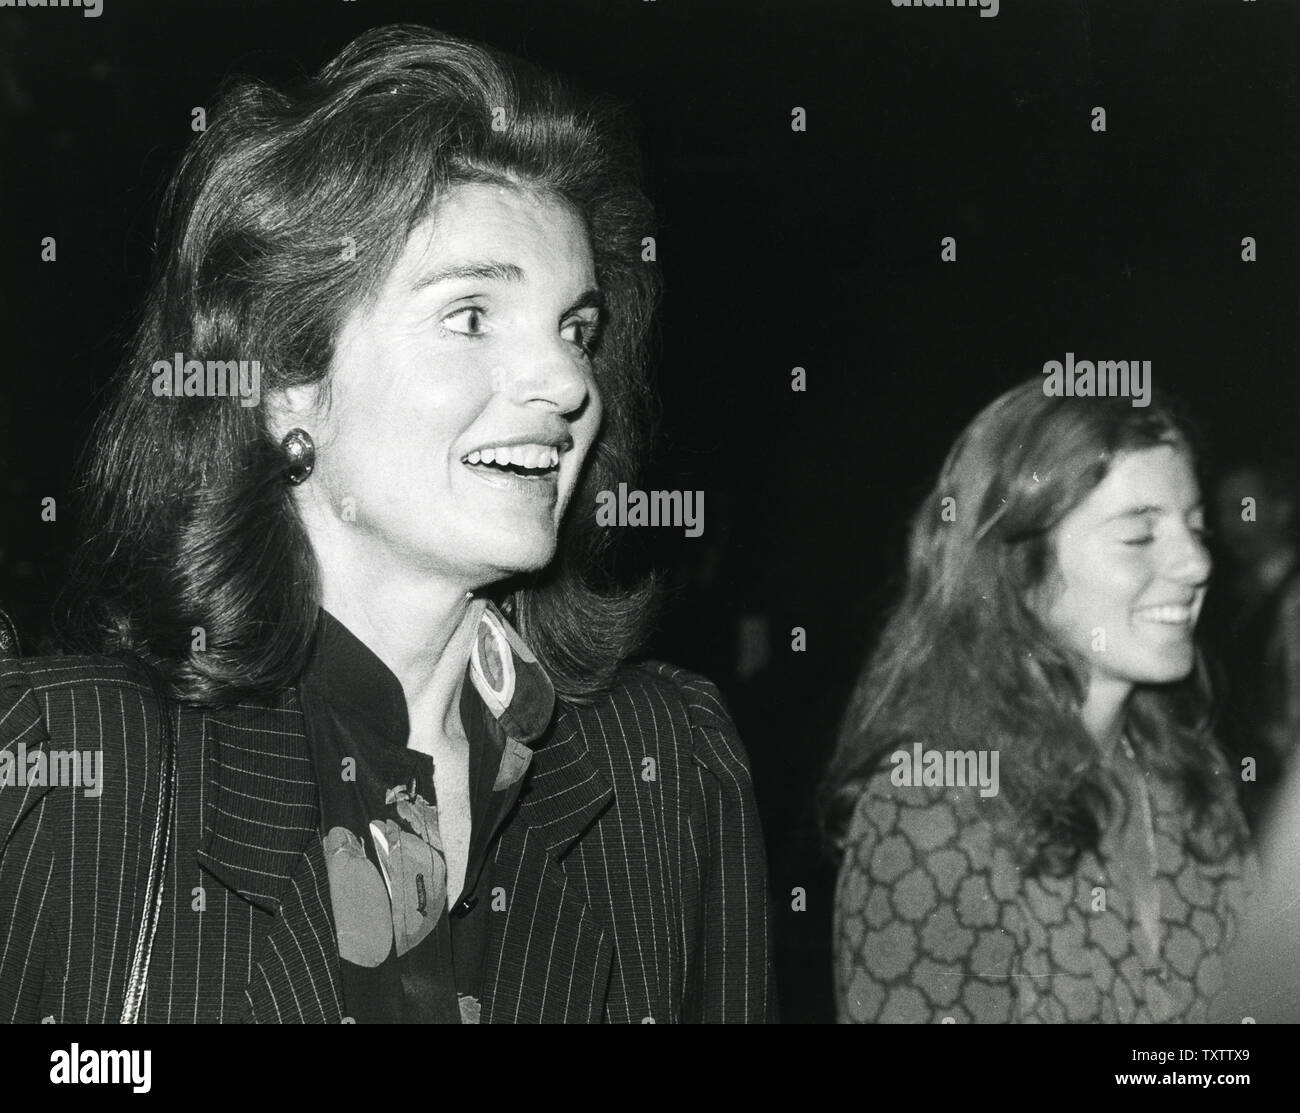 Jacqueline Kennedy Onassis is seen backstage at the Circle in the Square after a performance of The Bacchae on September 16, 1980 in New York City. UPI Stock Photo